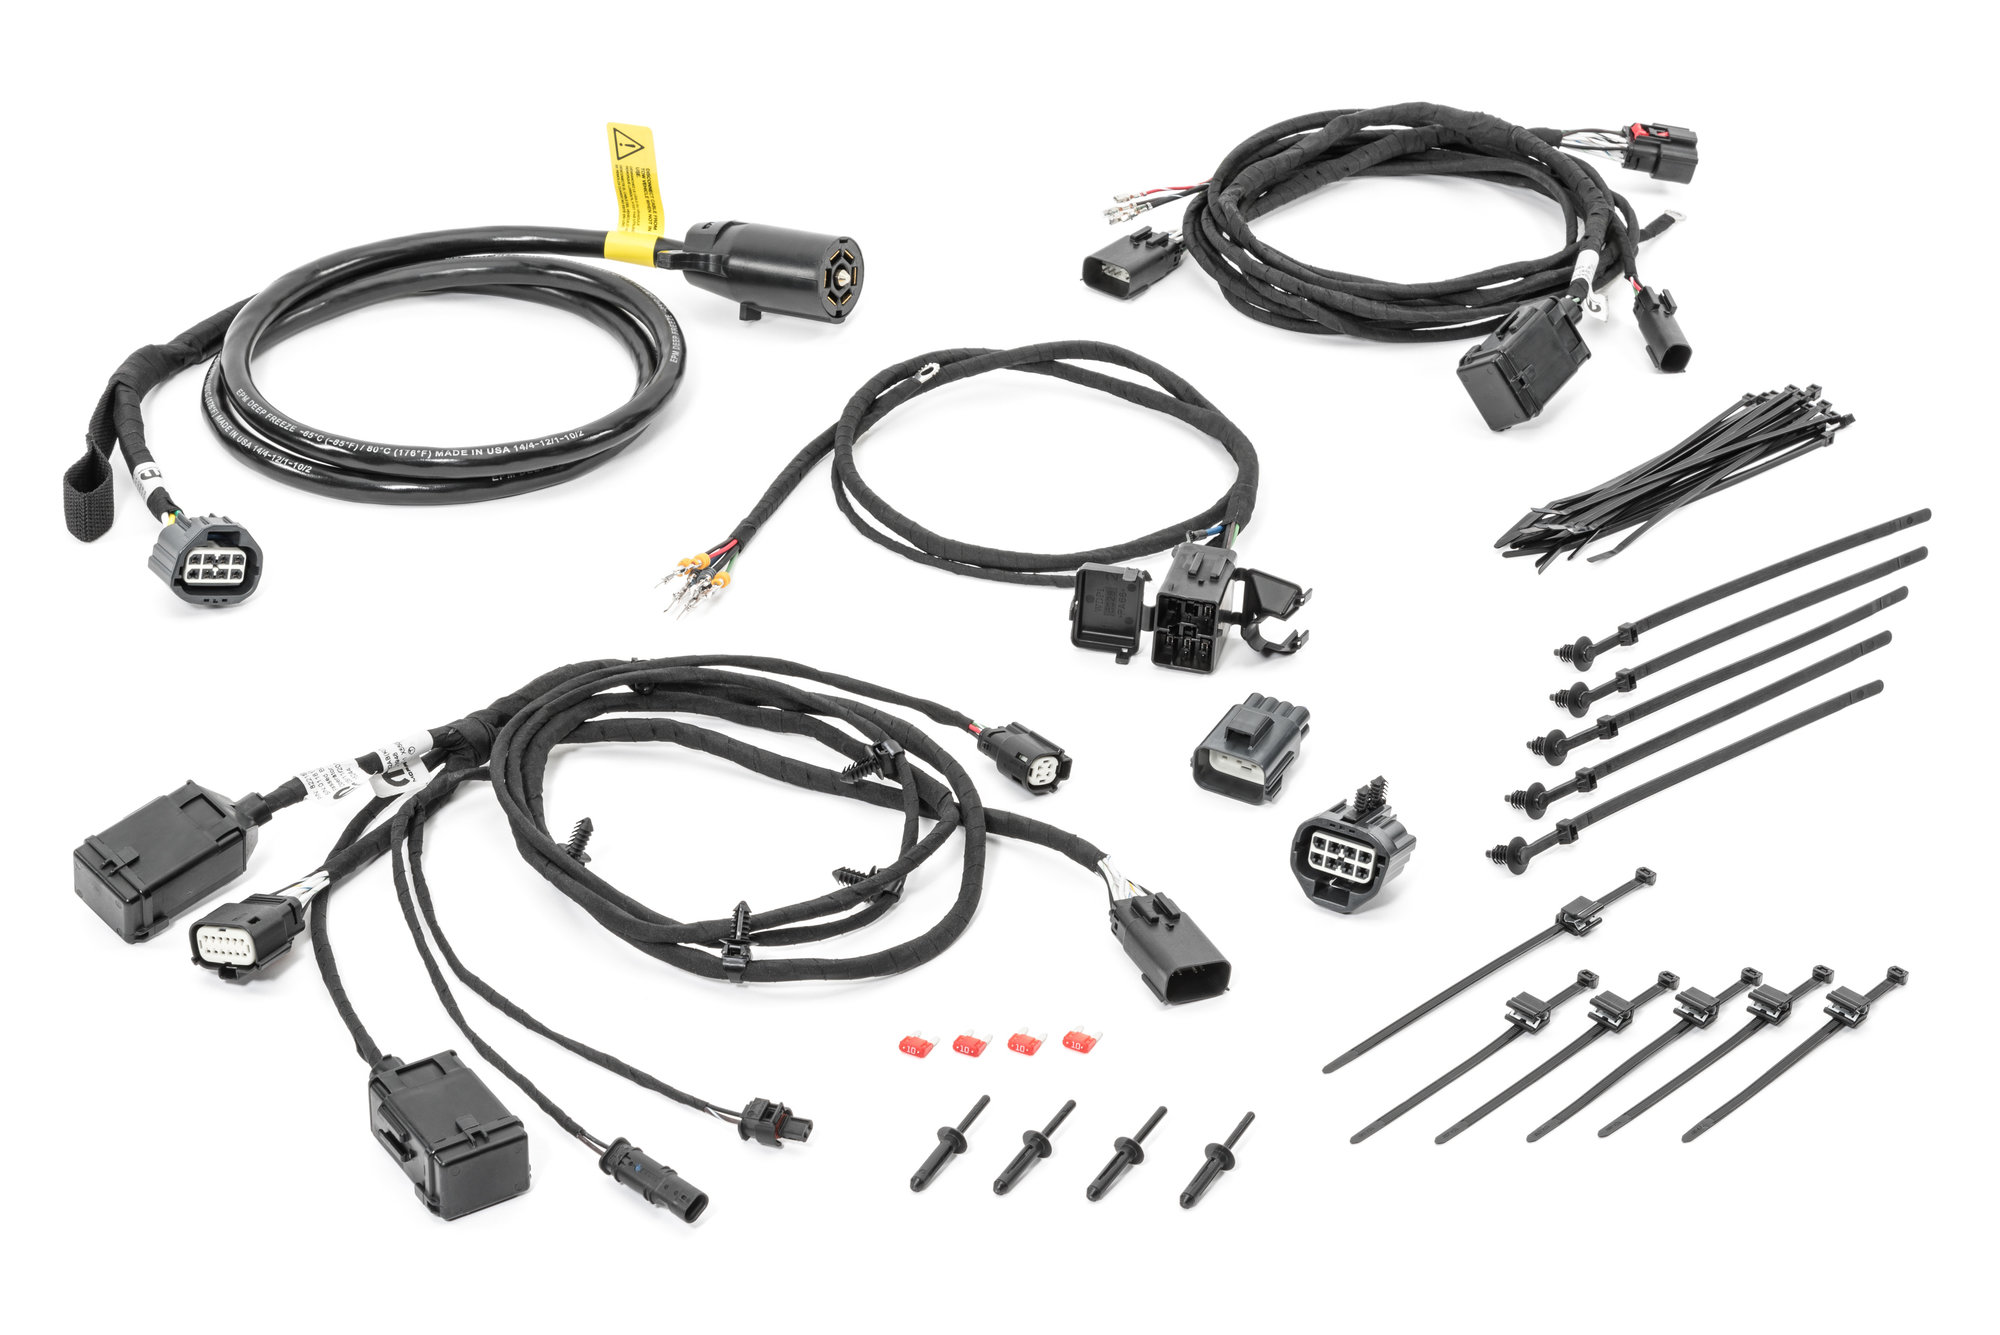 Mopar 82216358AA RV Towing Harness for 18-21 Jeep Wrangler